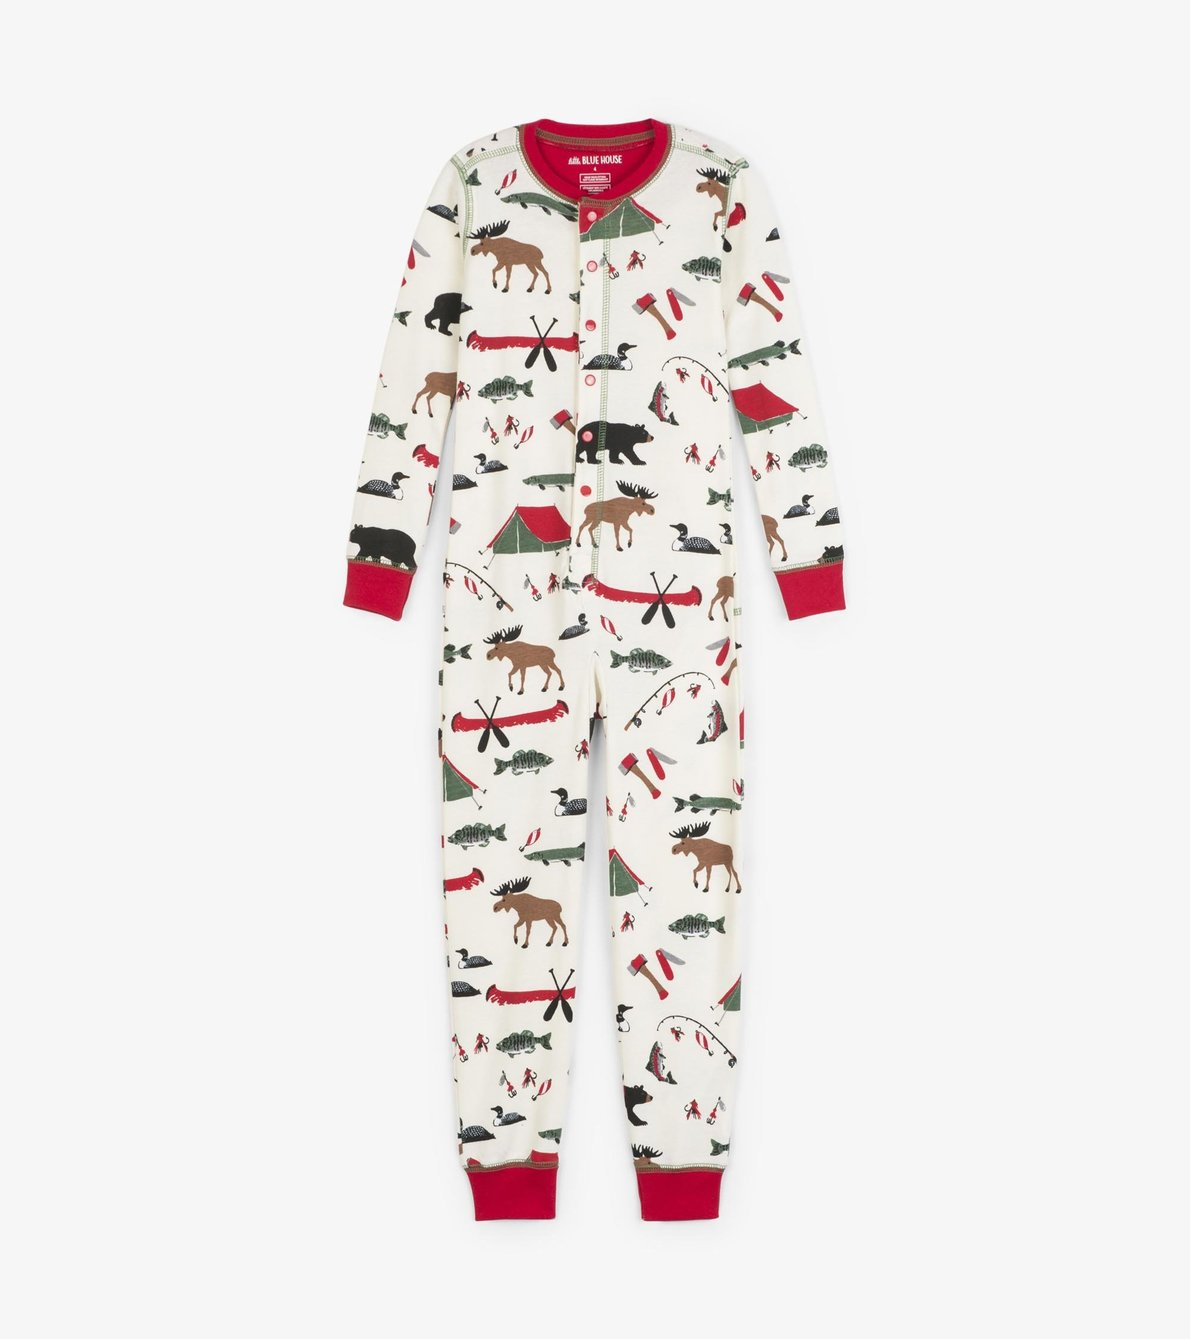 View larger image of Gone Camping Kids Union Suit